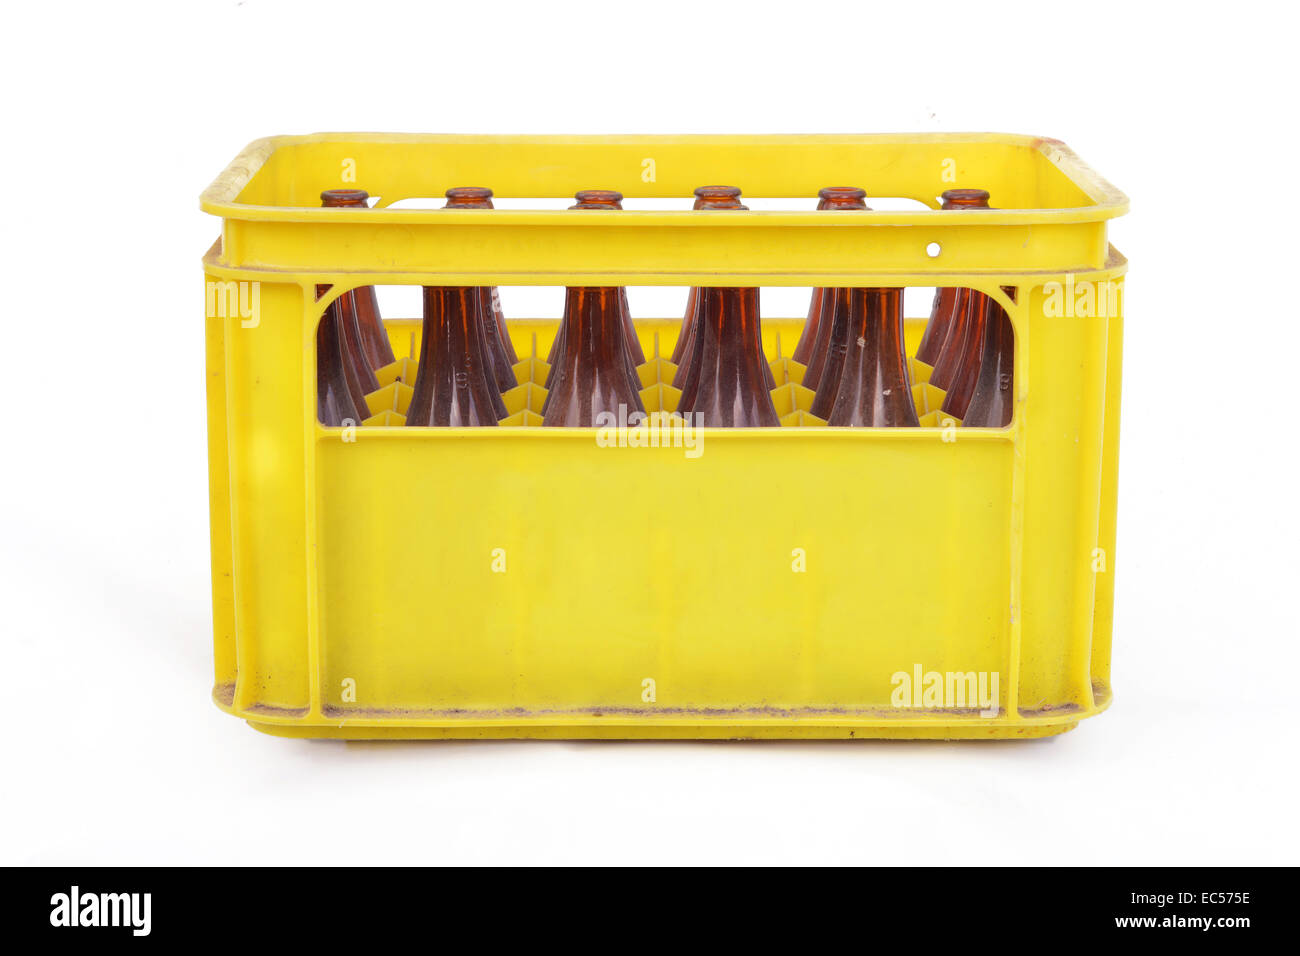 Dusty vintage yellow beer crate with empty bottles - Stock Image